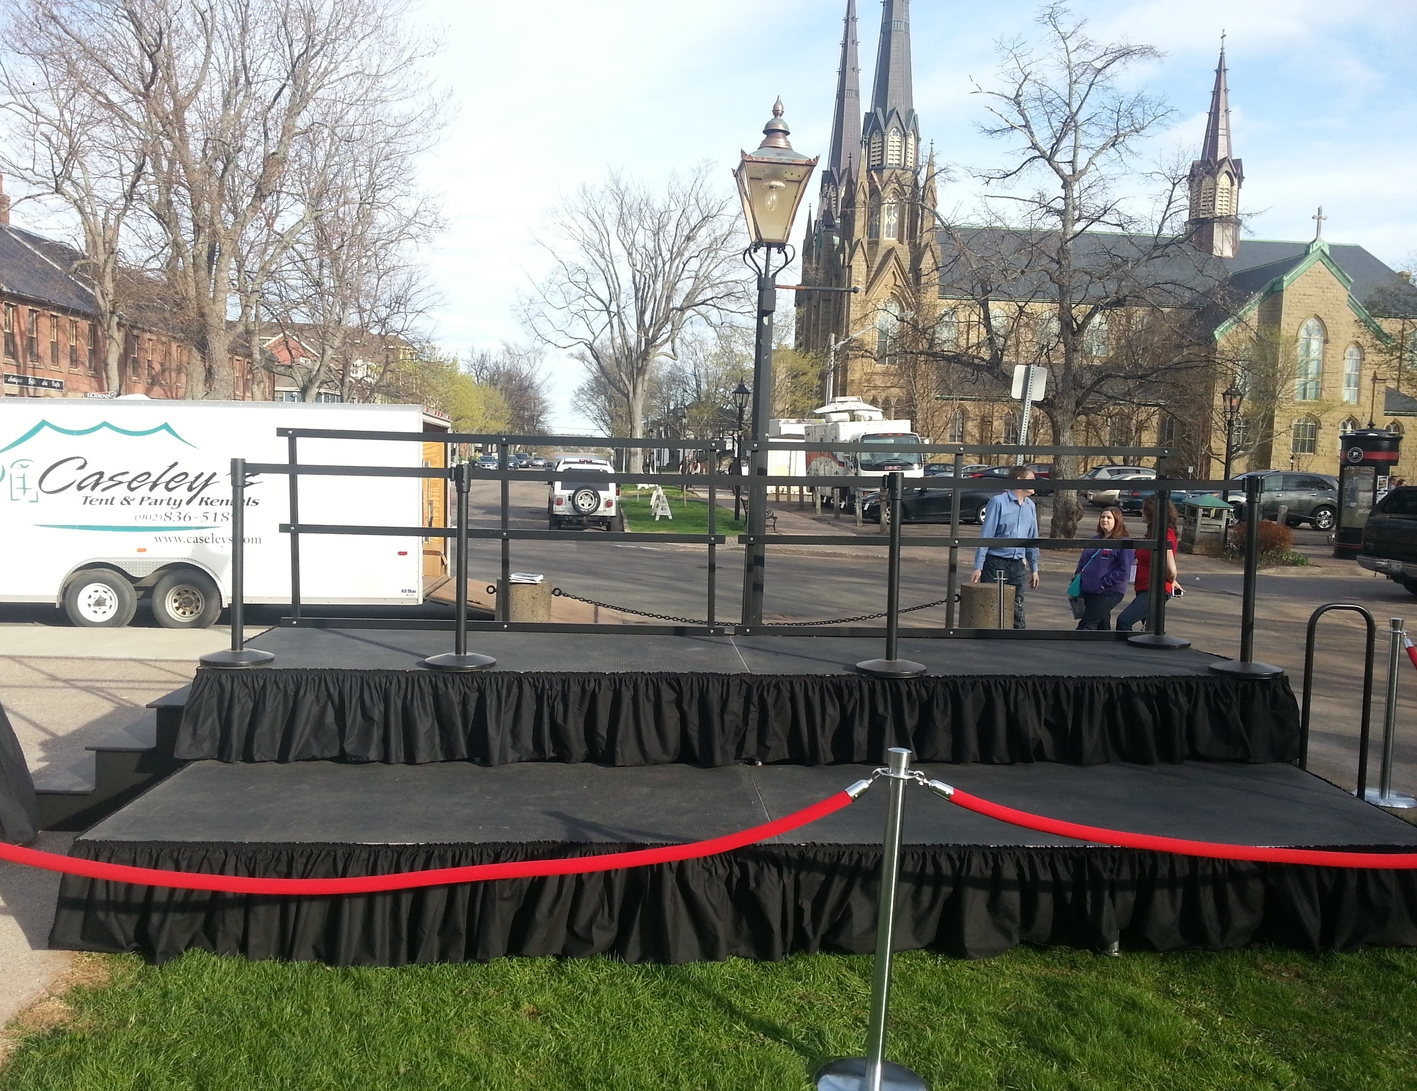 "Two Tier Staging   Stage Decks - 4'x8' per section      8"" height$  50.00  16"" height$ 55.00  24"" height$ 60.00  32"" height  includes Railings and Clamps $ 75.00"